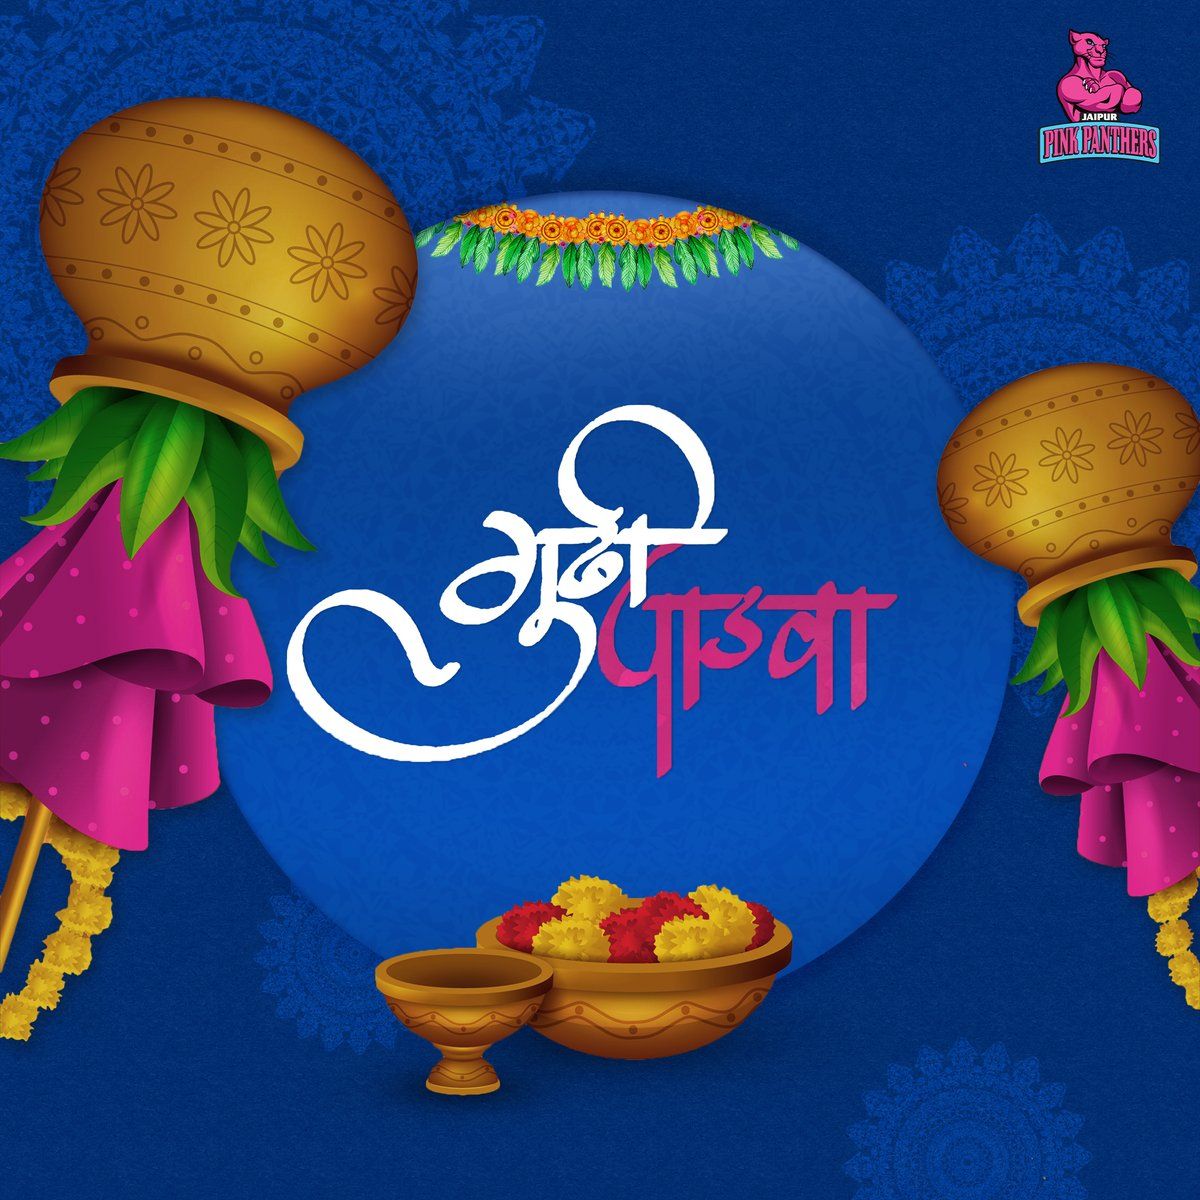 On this auspicious occasions of Gudi Padwa may you be endowed with happiness, health & wealth. Happy Gudi Padwa!  #PantherSquad #JaiHanuman #TopCats #JaipurPinkPanthers #JPP #Jaipur #vivoprokabaddi